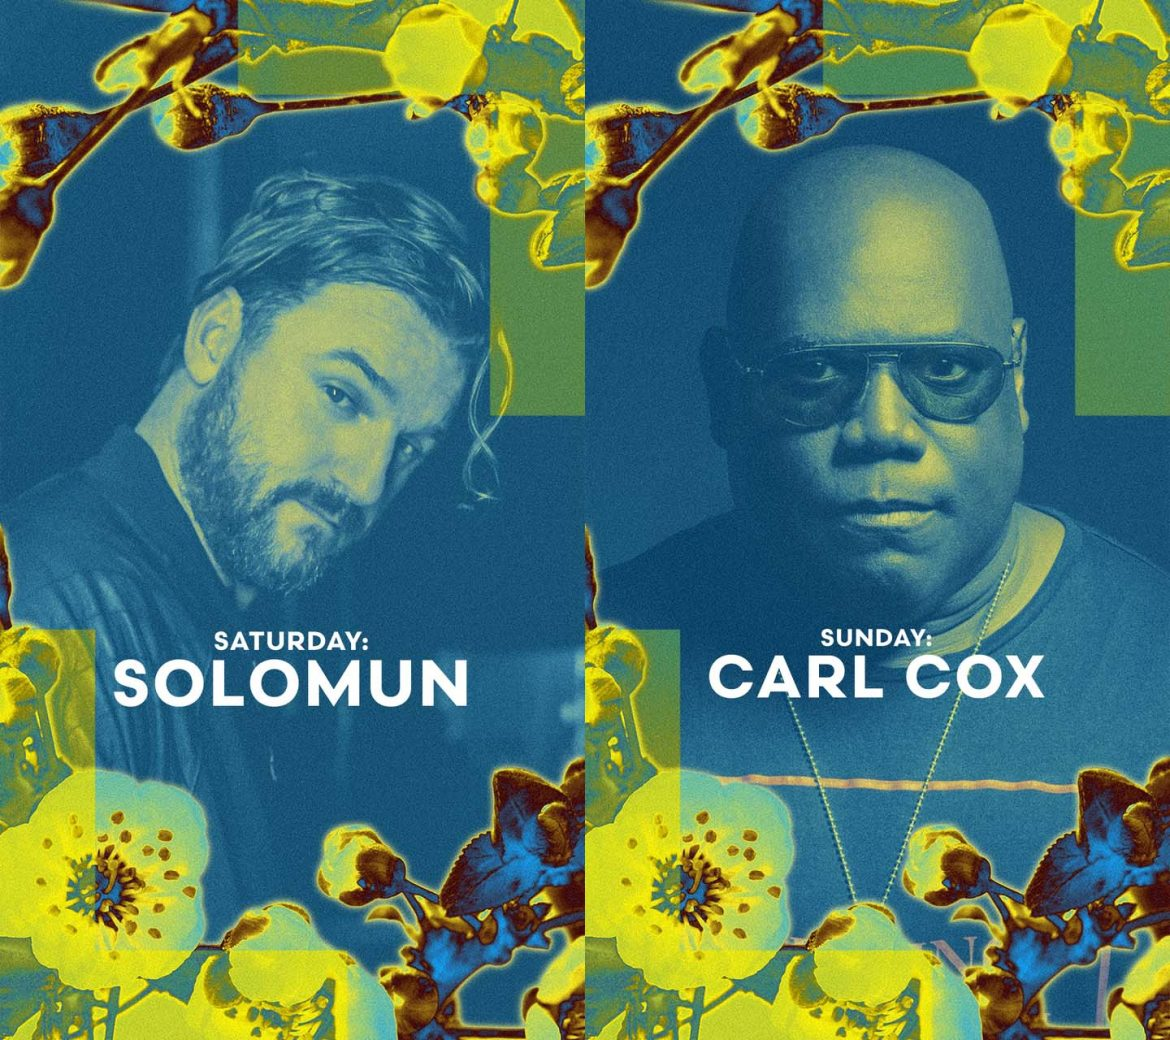 Loveland Festival reveals Carl Cox and Solomun as their first headliners